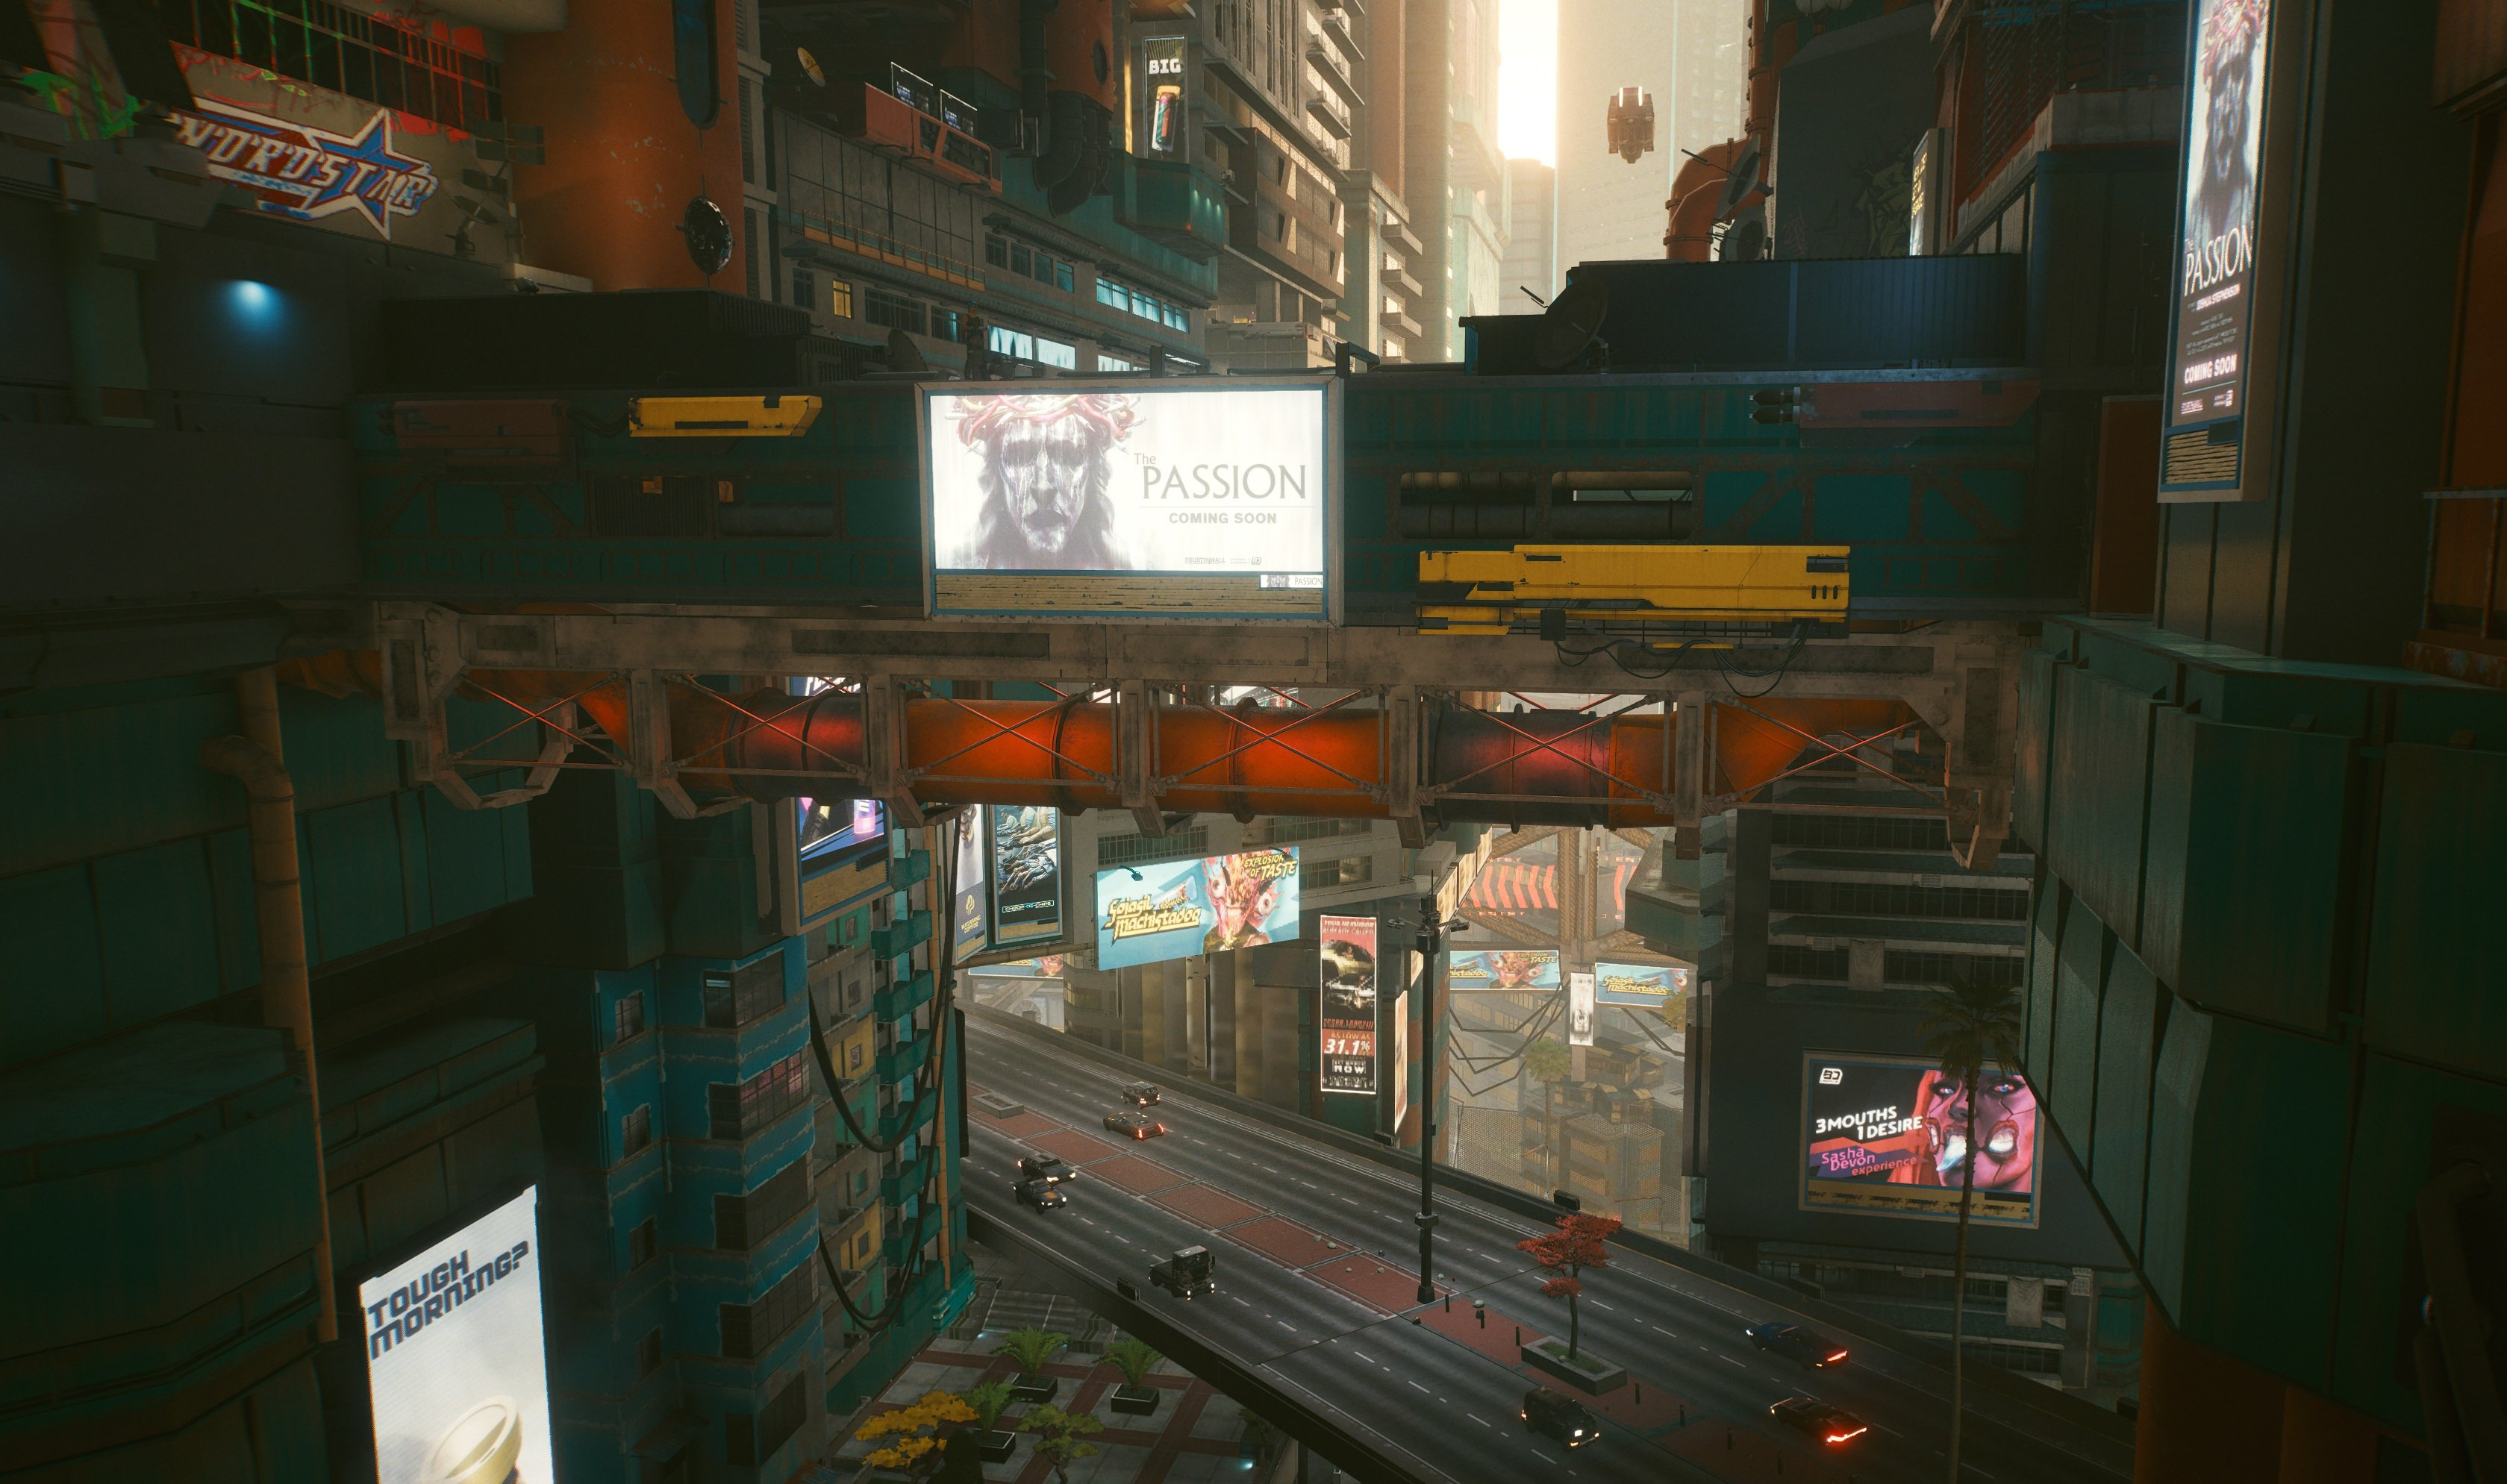 If you're fiddling with Cyberpunk 2077's options, take a look at 'continuous dialogue skip' screenshot